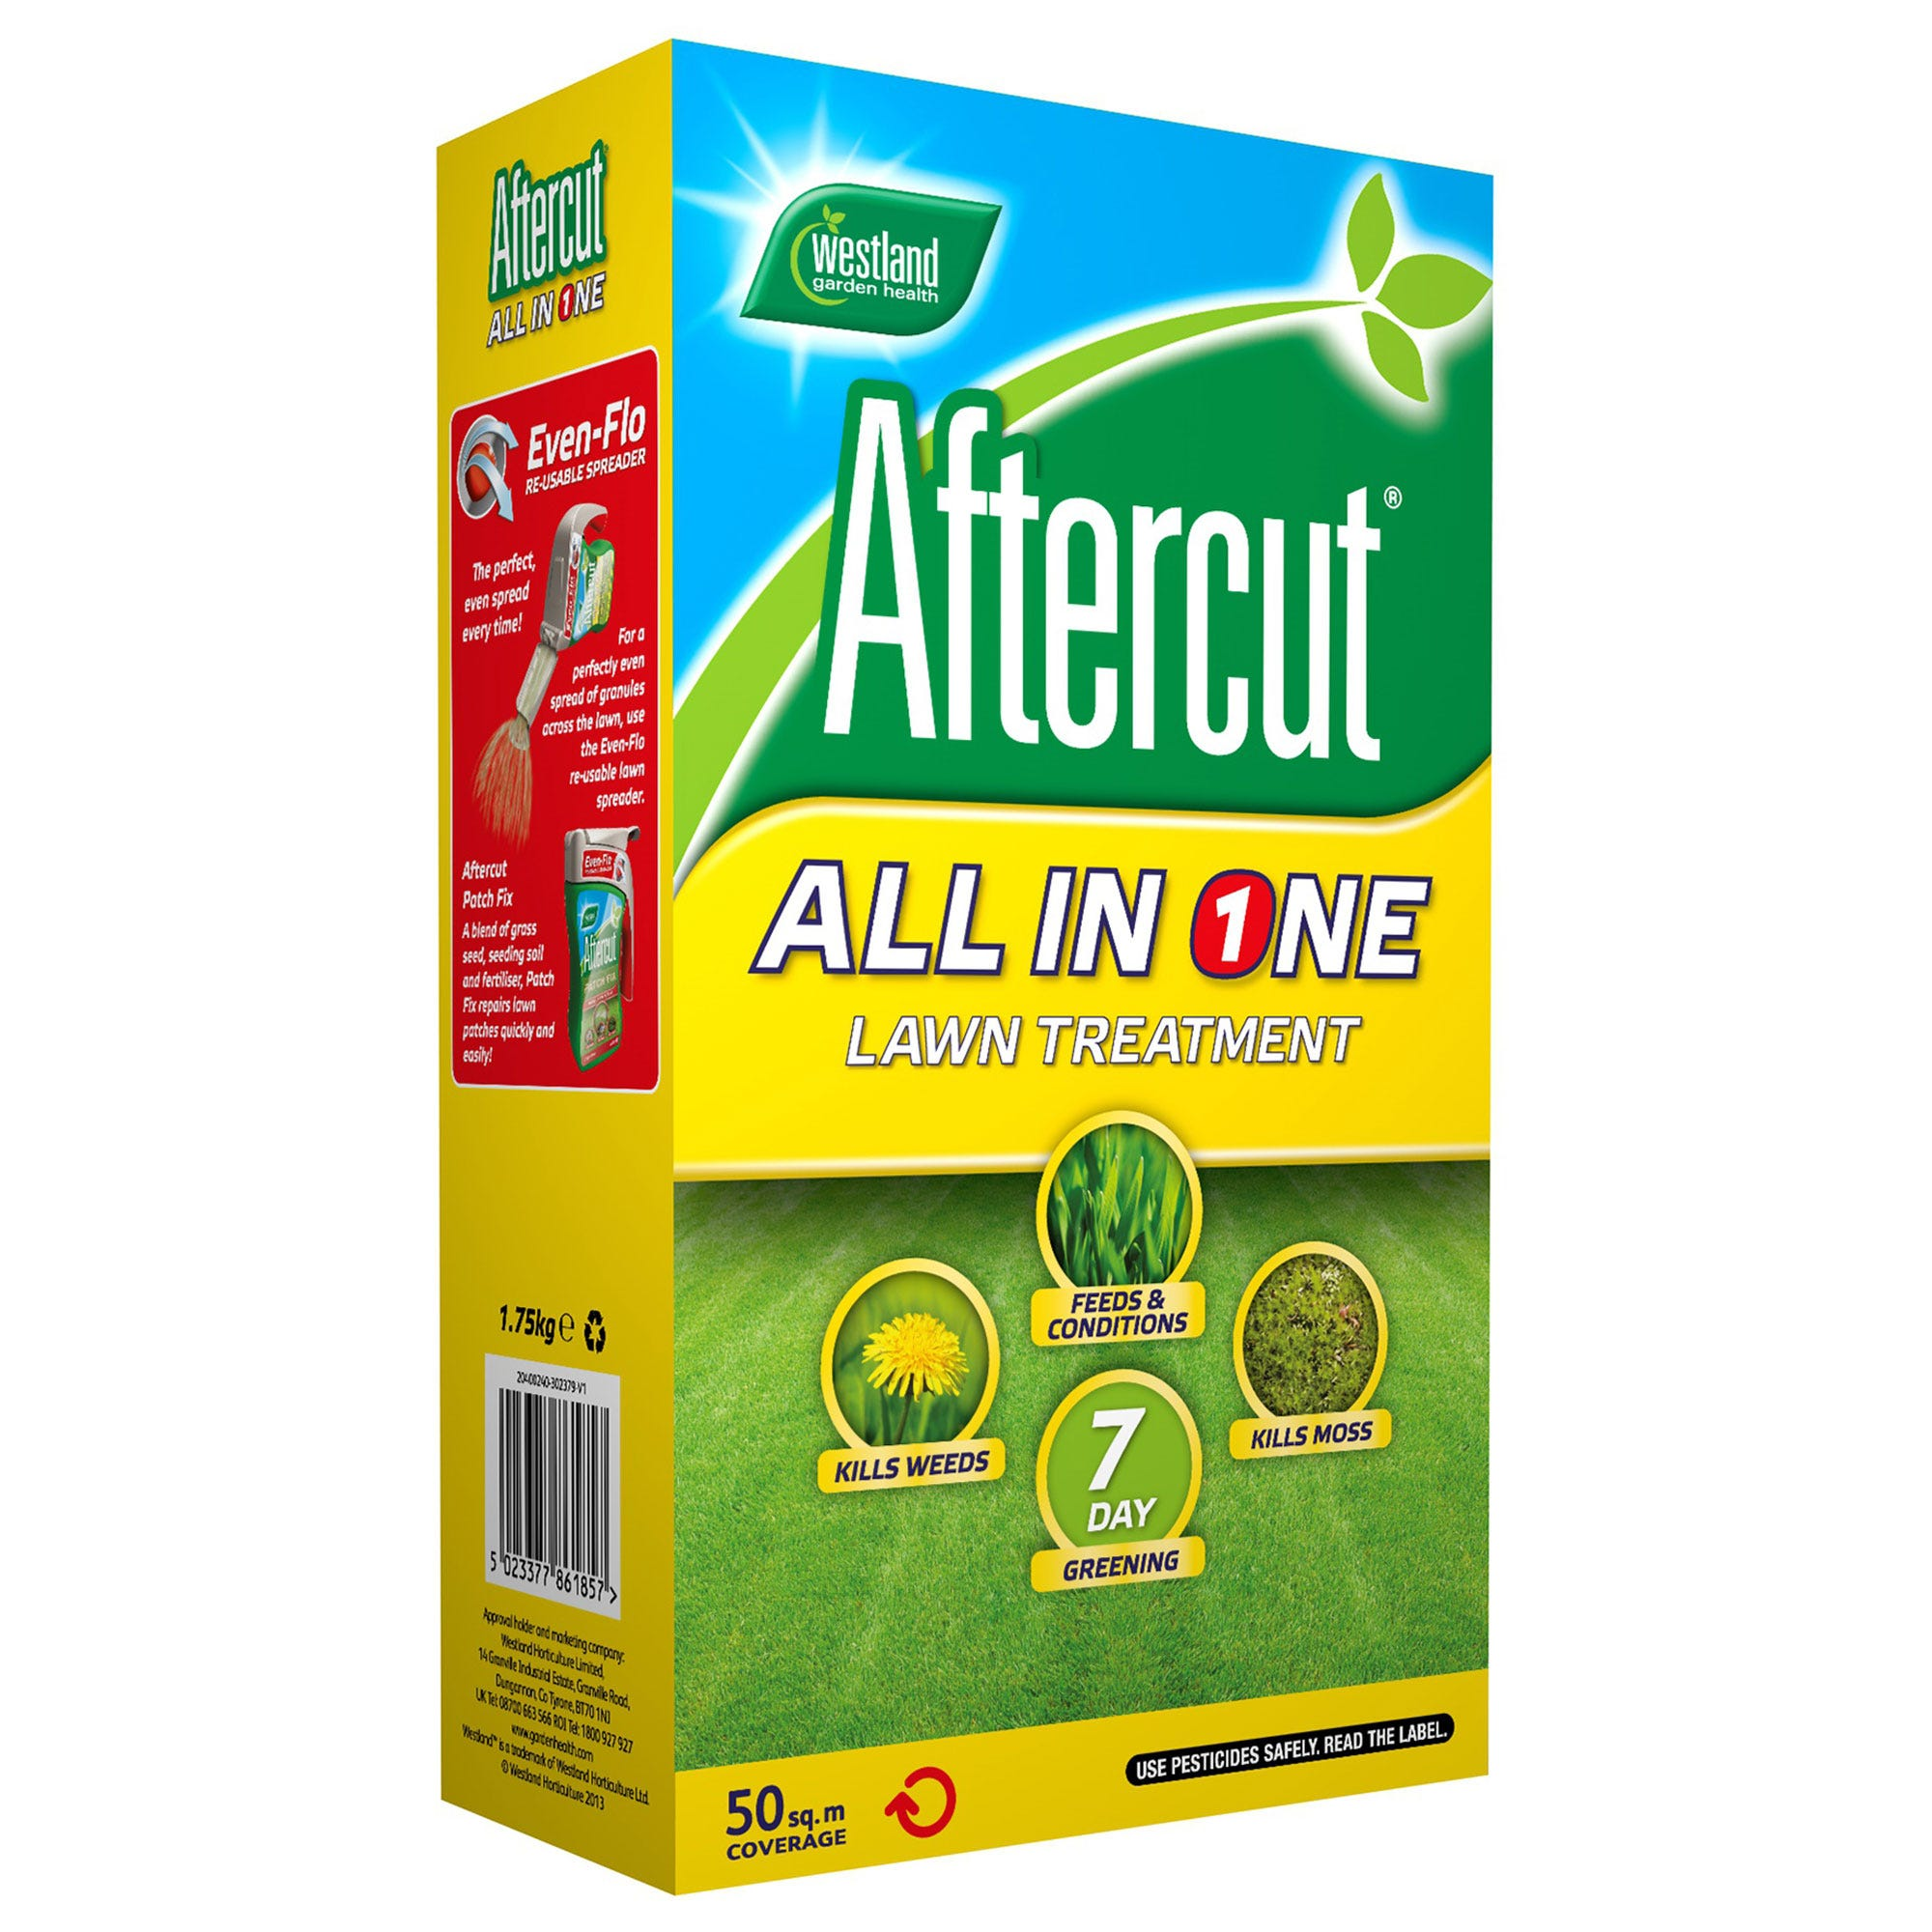 Image of Aftercut All-In-One Lawn Treatment – 50 sq.m